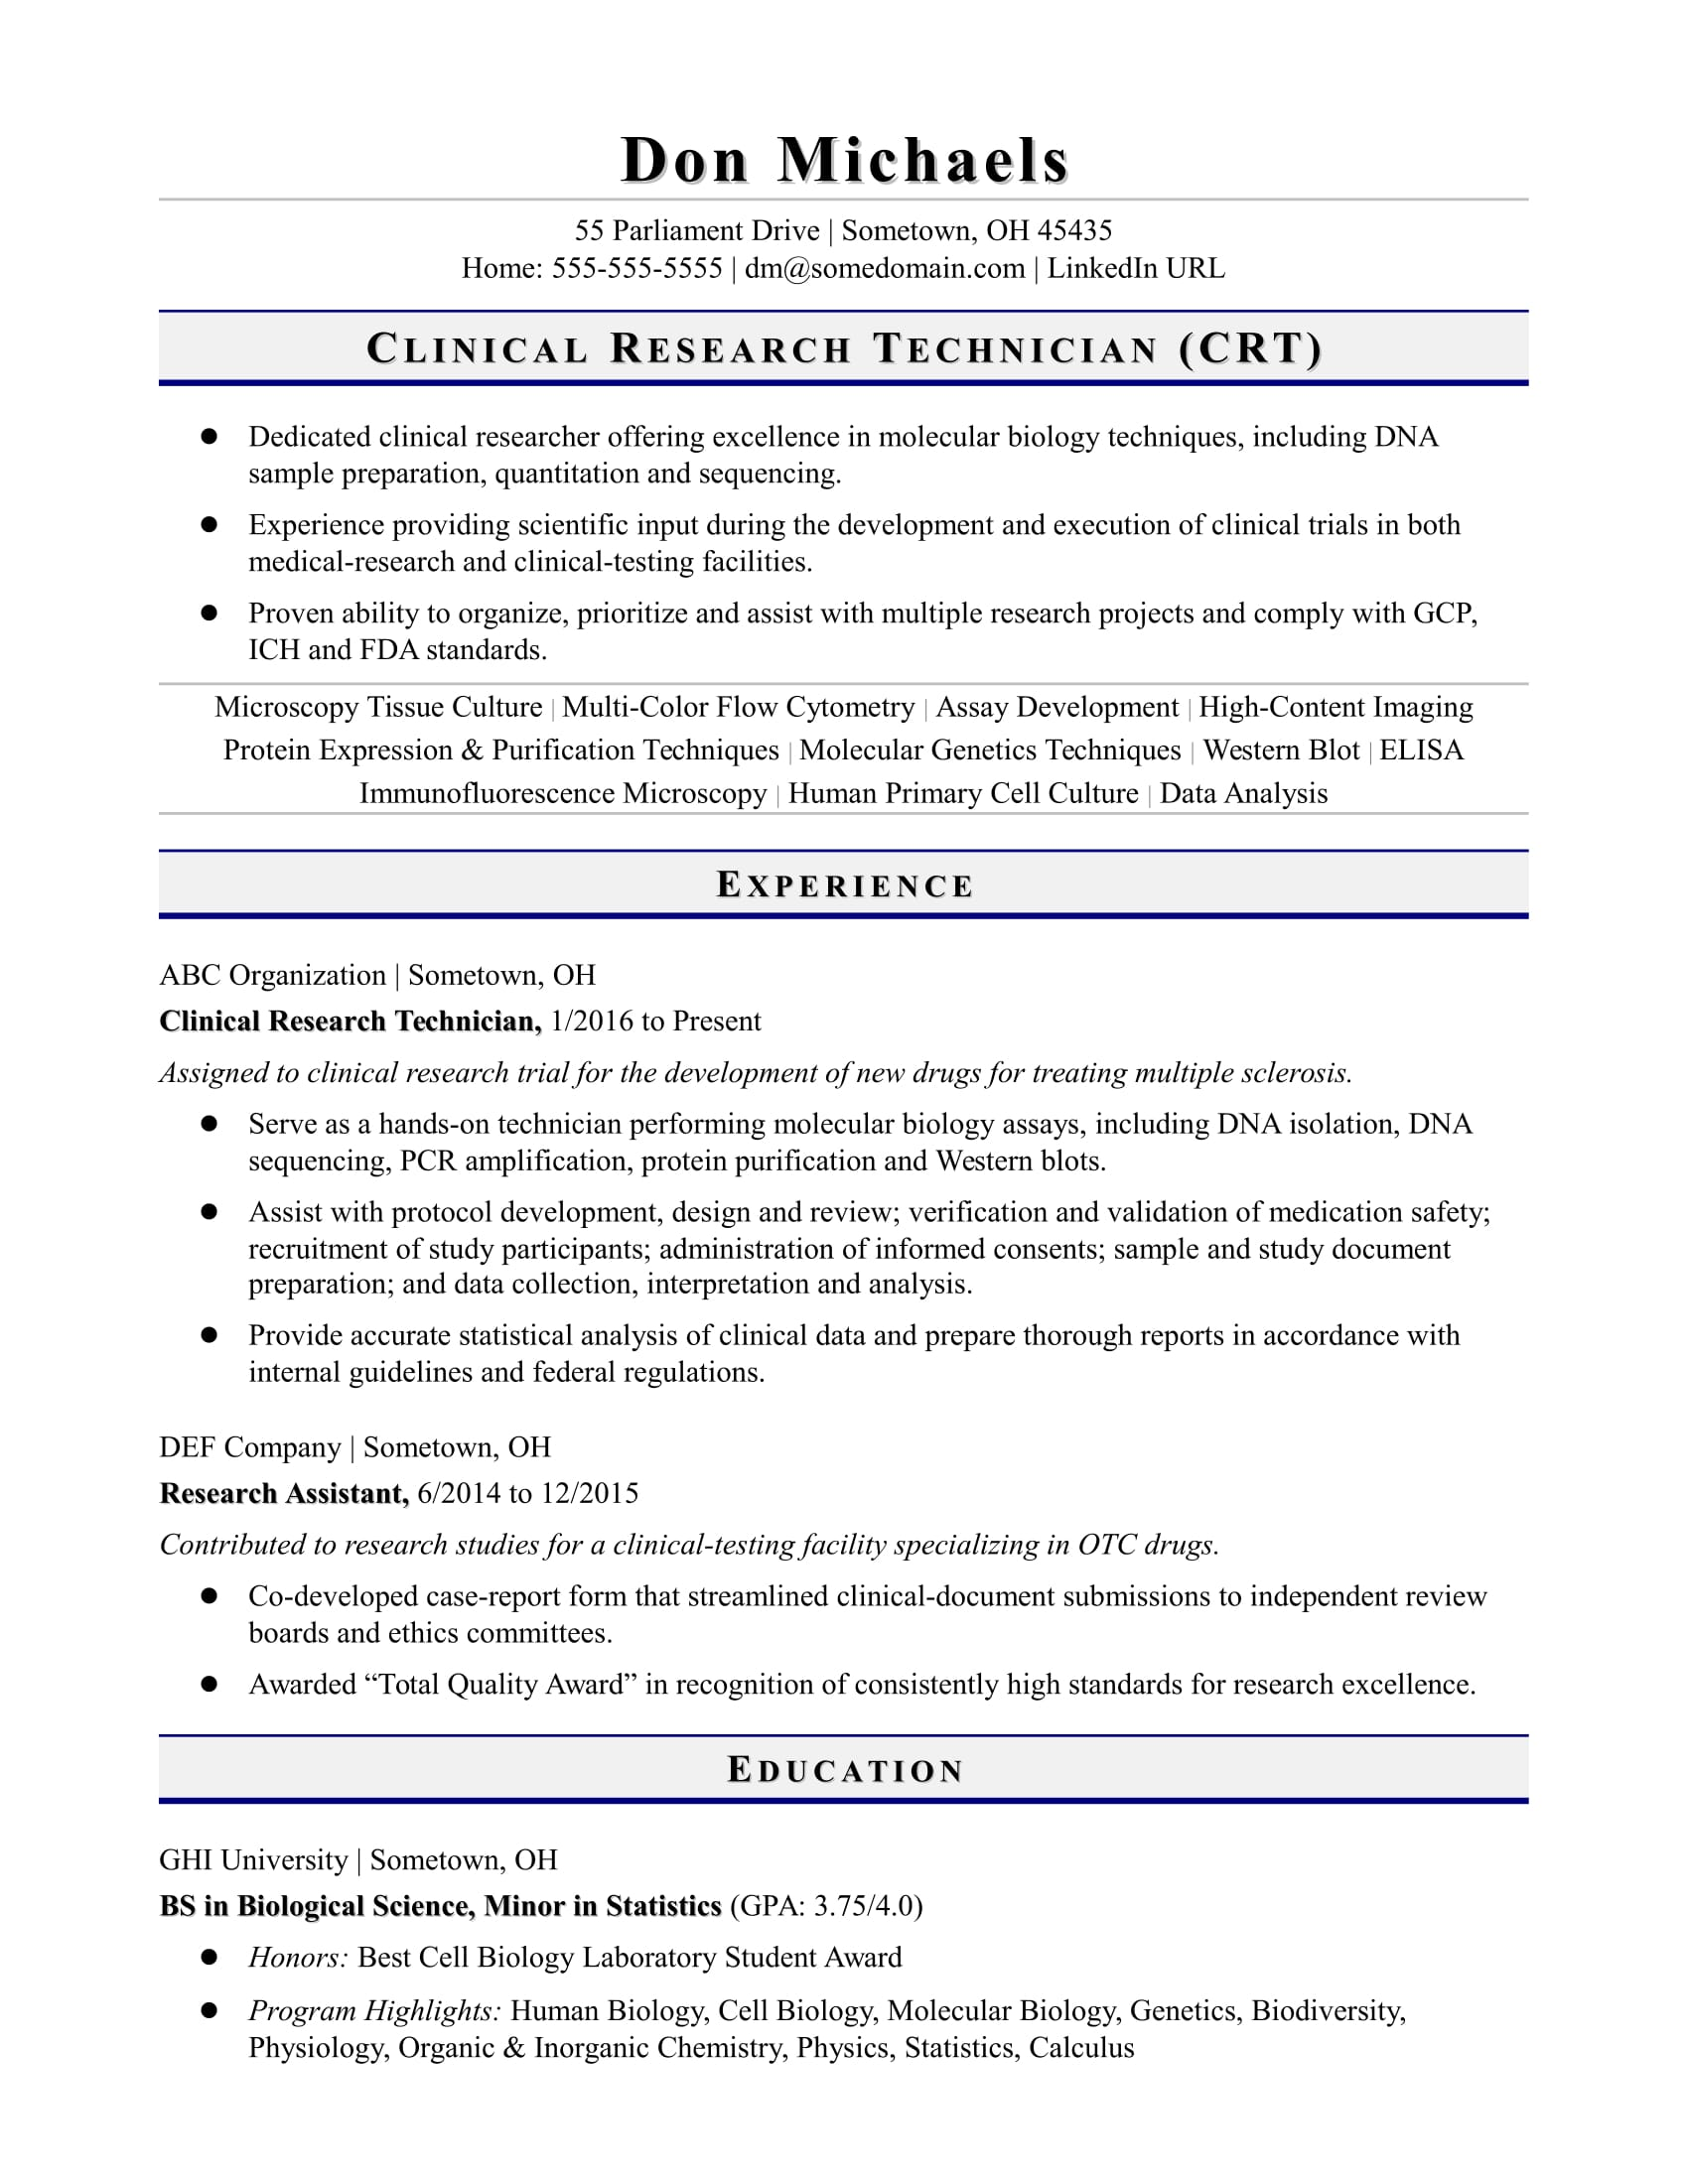 example of a researchers cv